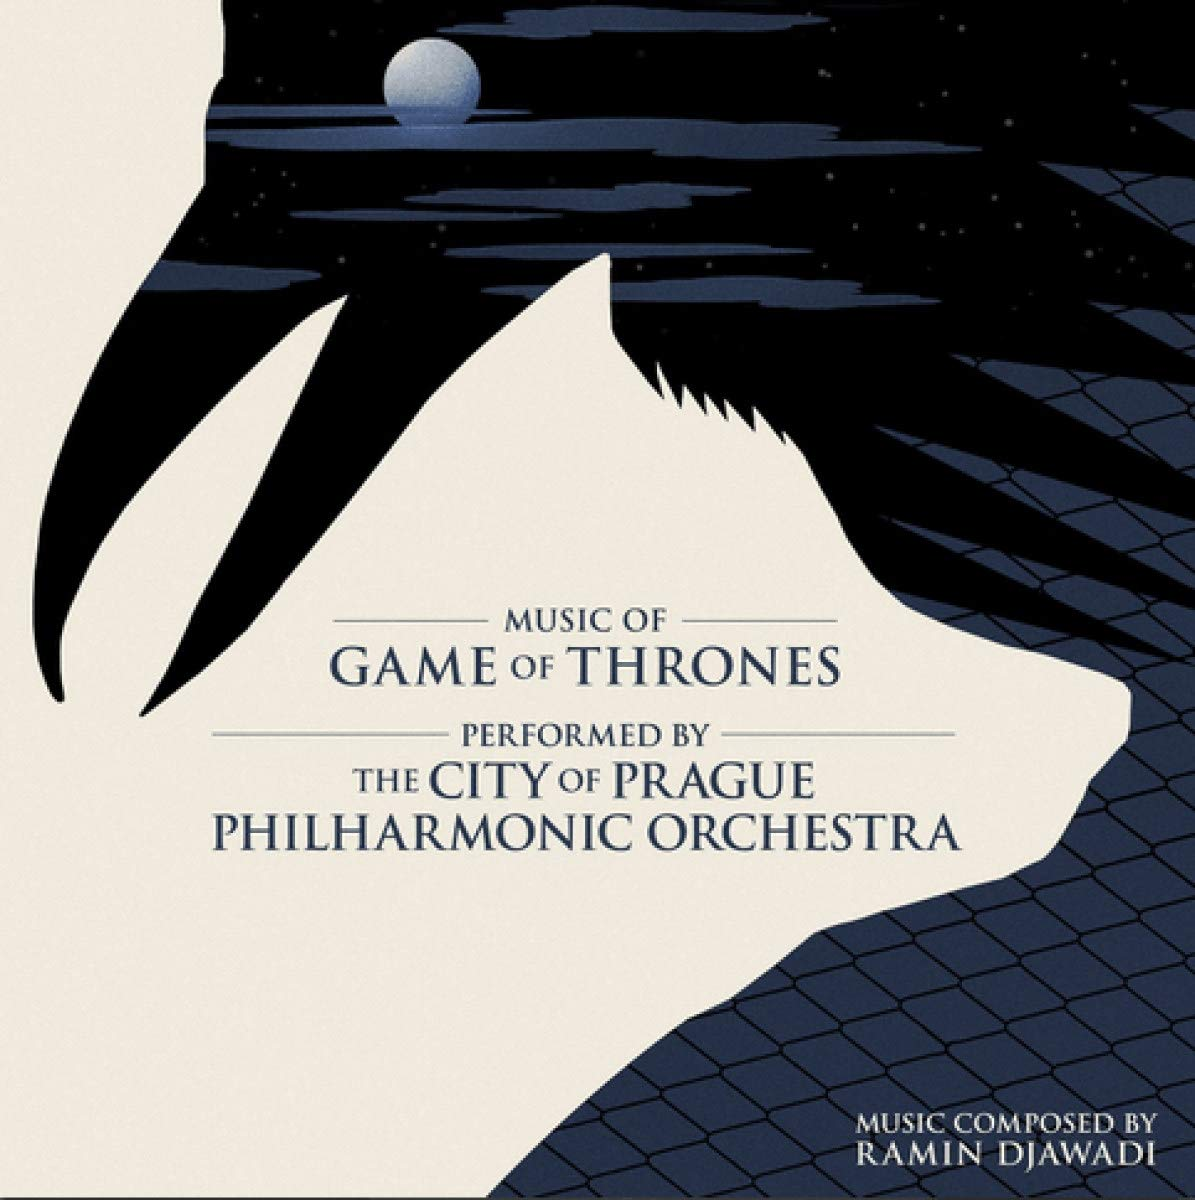 Music of Game of Thrones by SILVA SCREEN